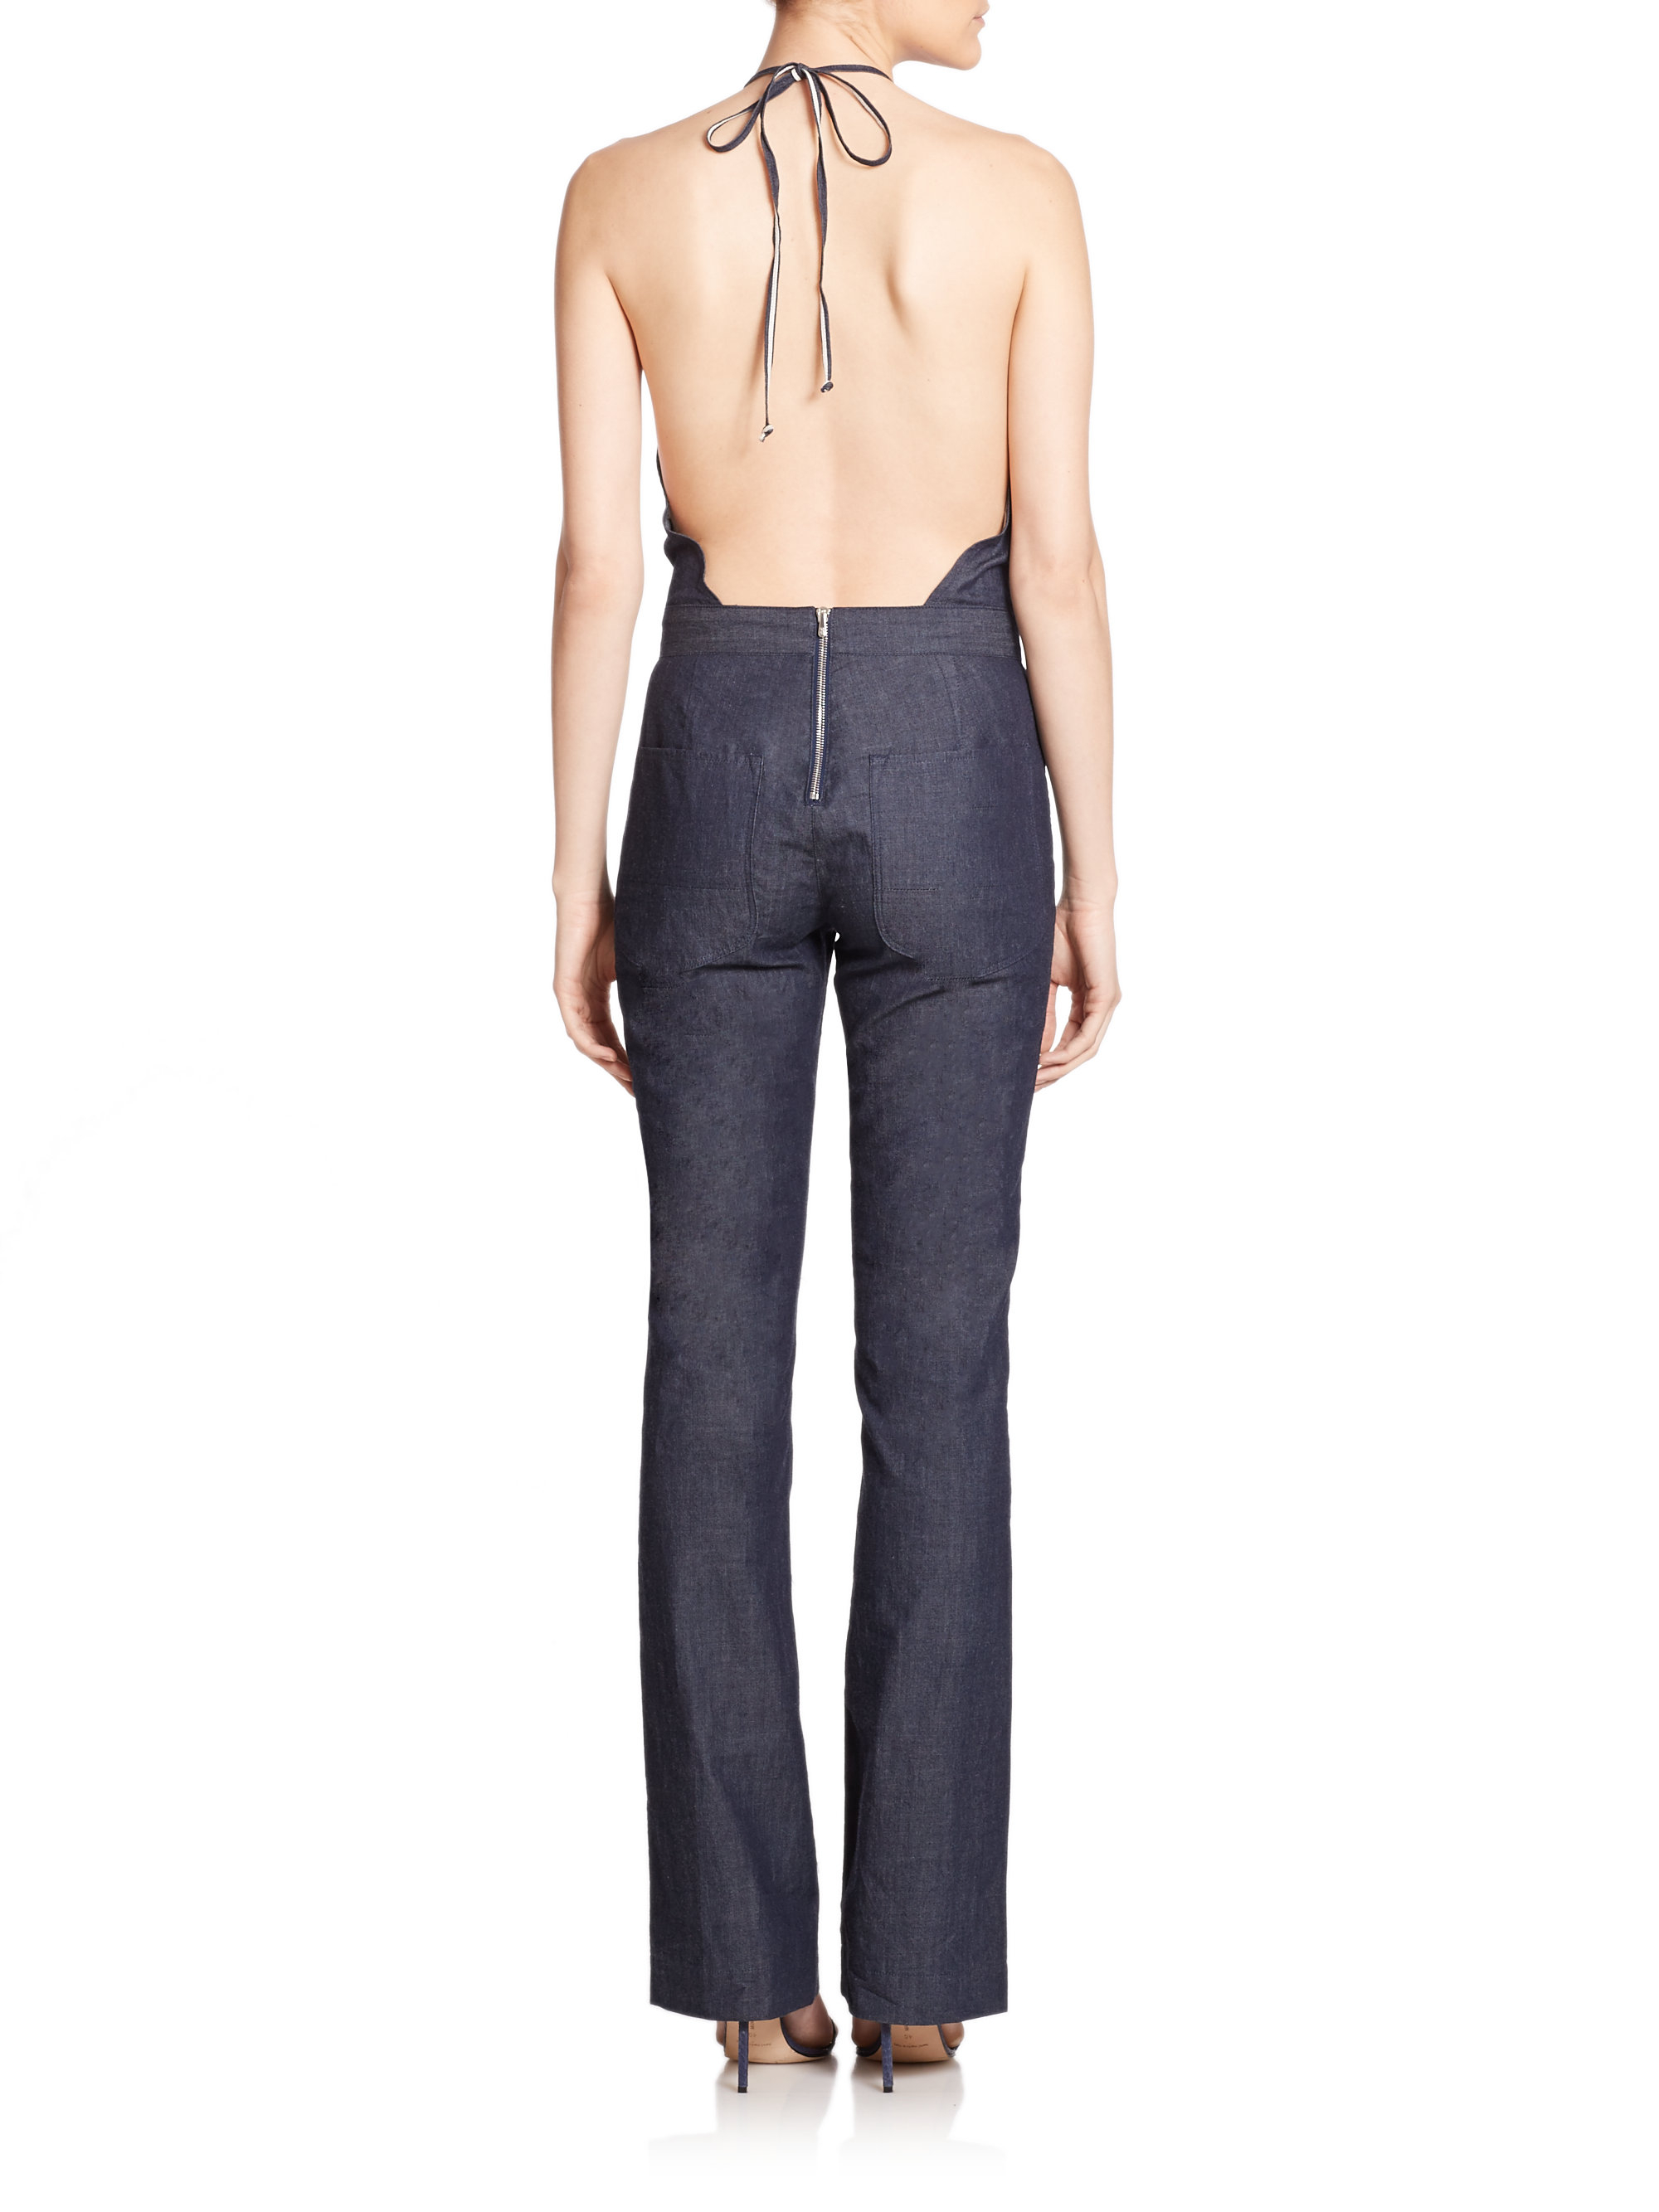 3x1 Denim Halter Jumpsuit in Black | Lyst